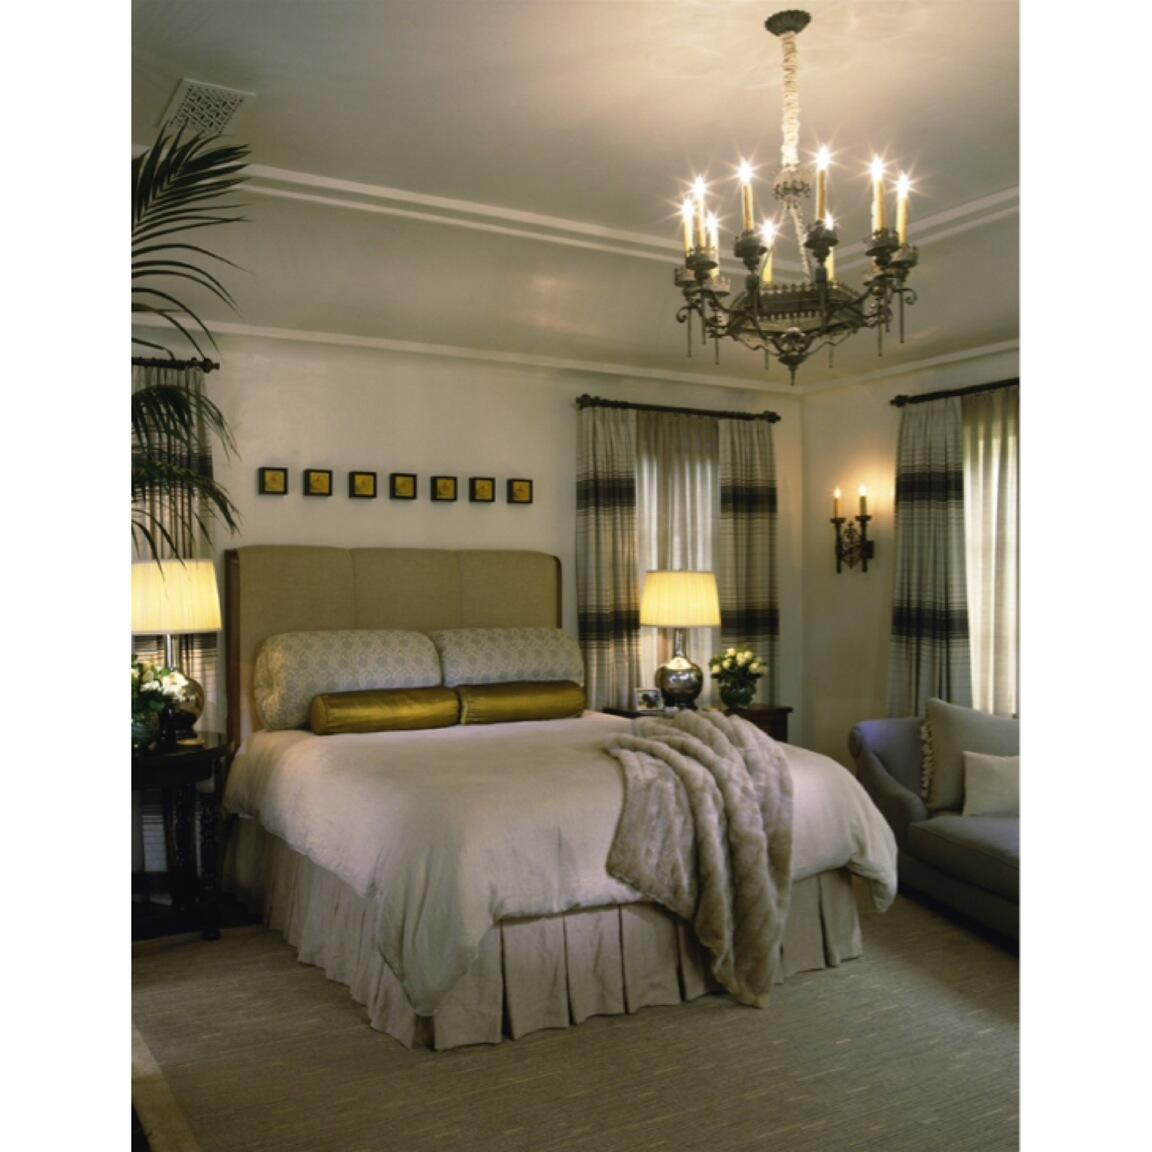 Make your bedroom looks like a hotel suit http://t.co/4X3jC5bkMd